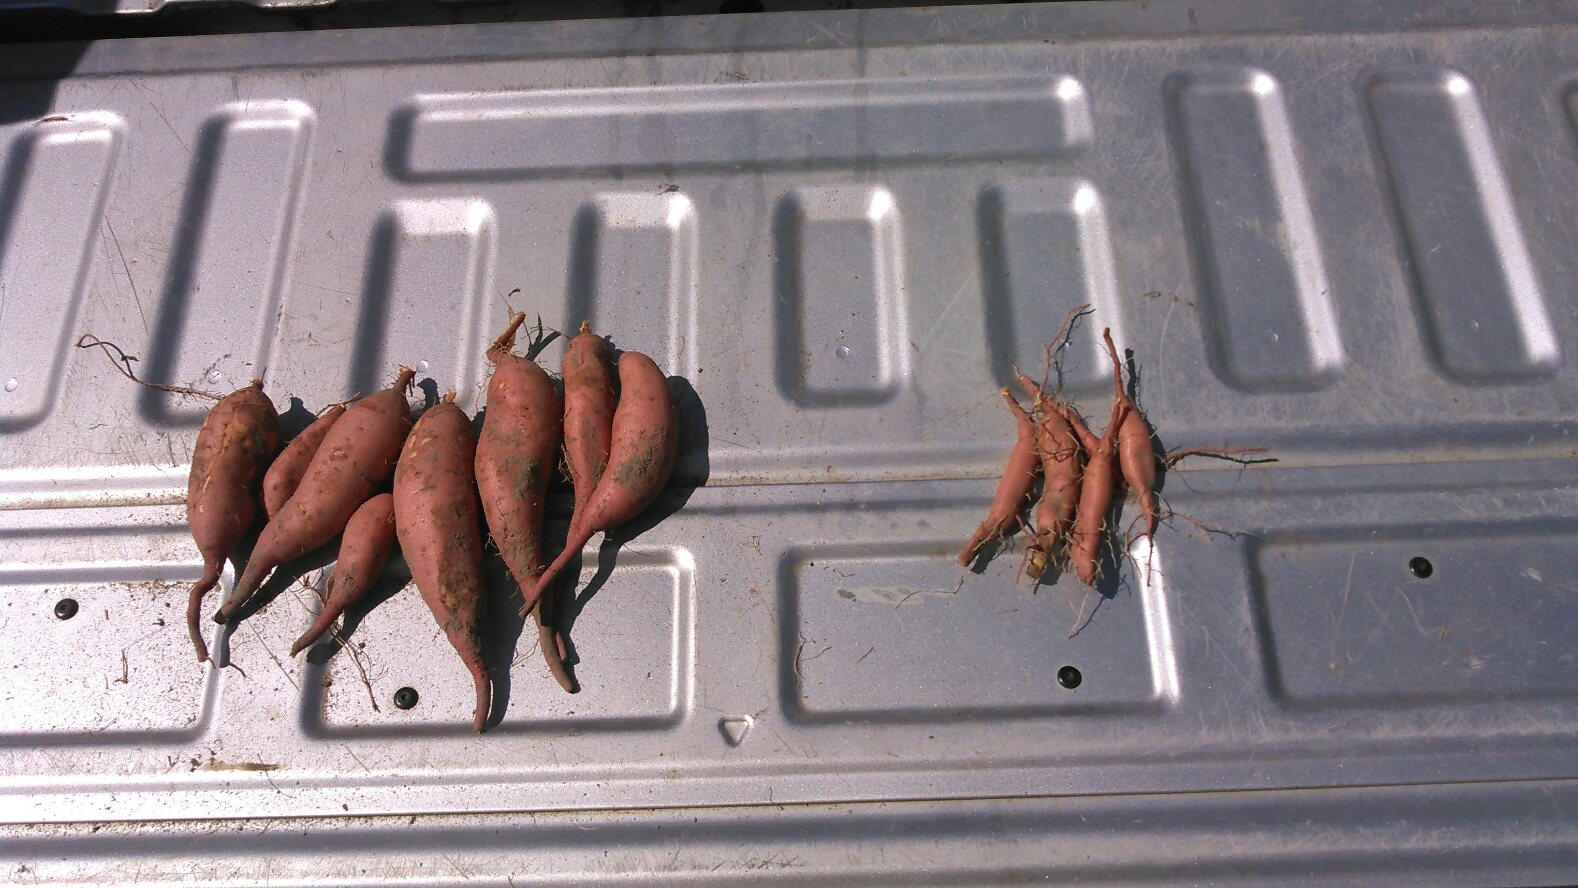 Some sweet potatoes grown with irrigation and some sweet potatoes grown without irrigation